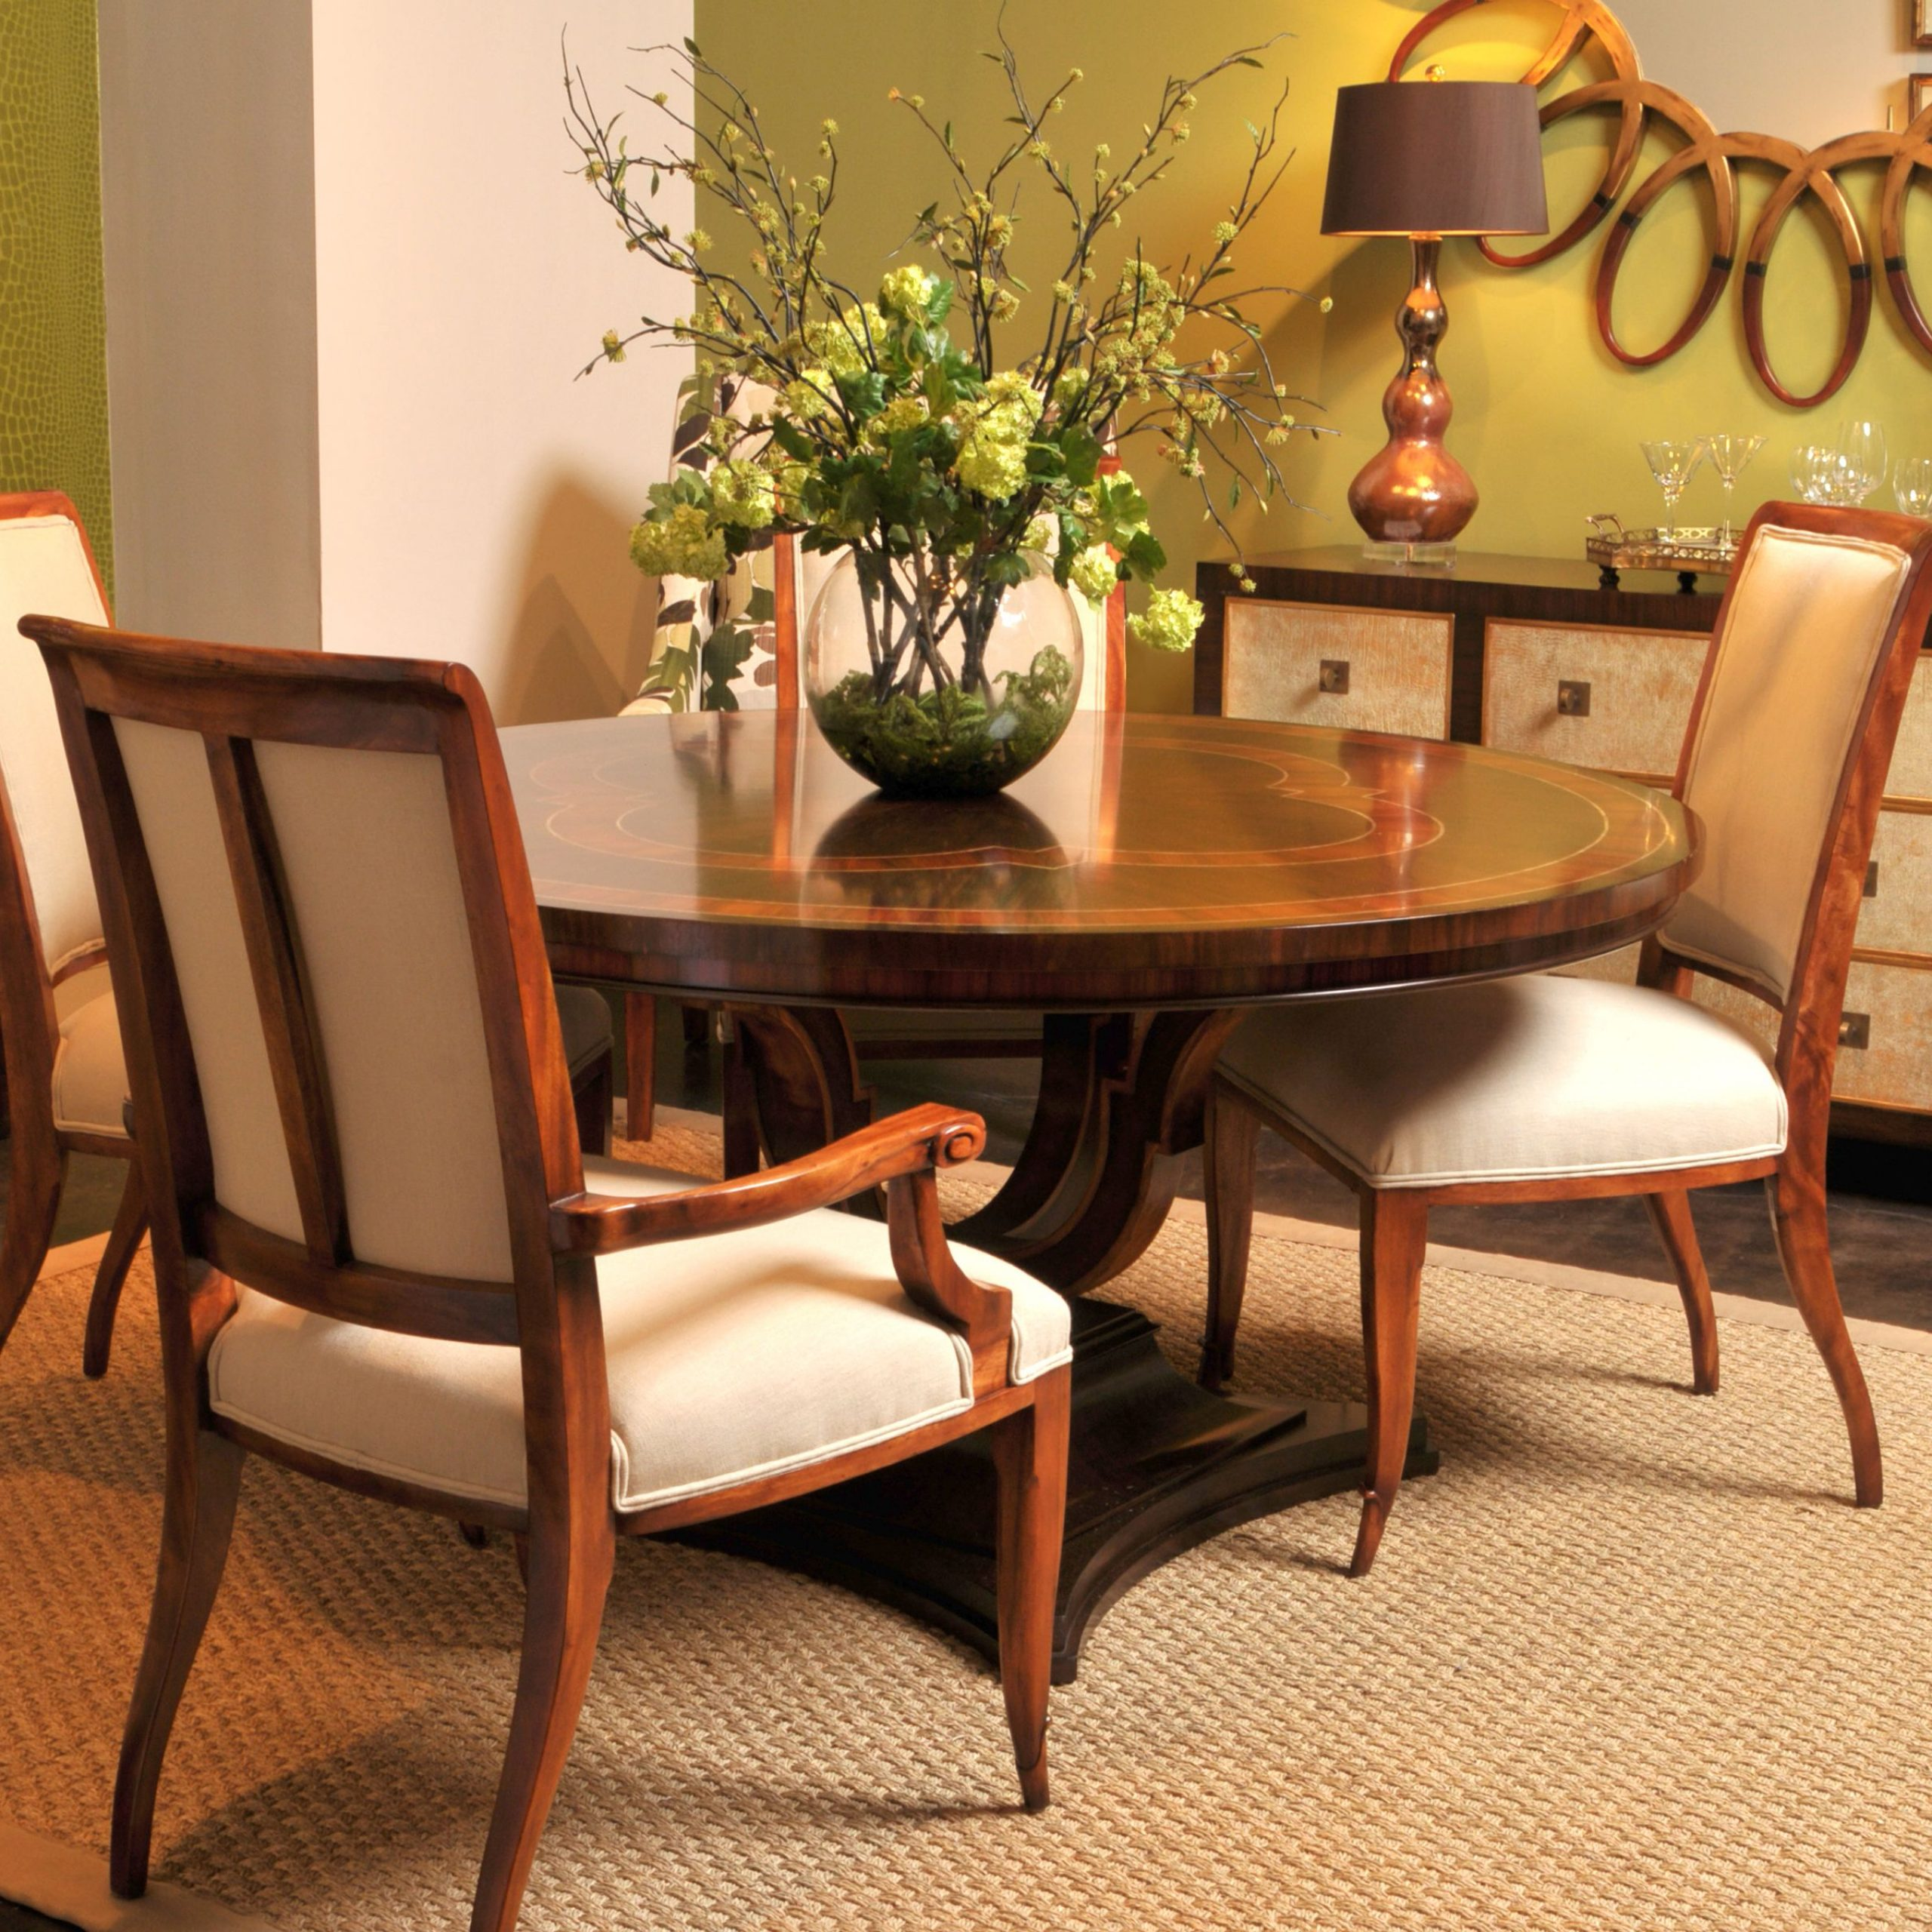 Neo Round Dining Tables for Preferred The Rennes Round Dining Table Is A Neo-Classical Round